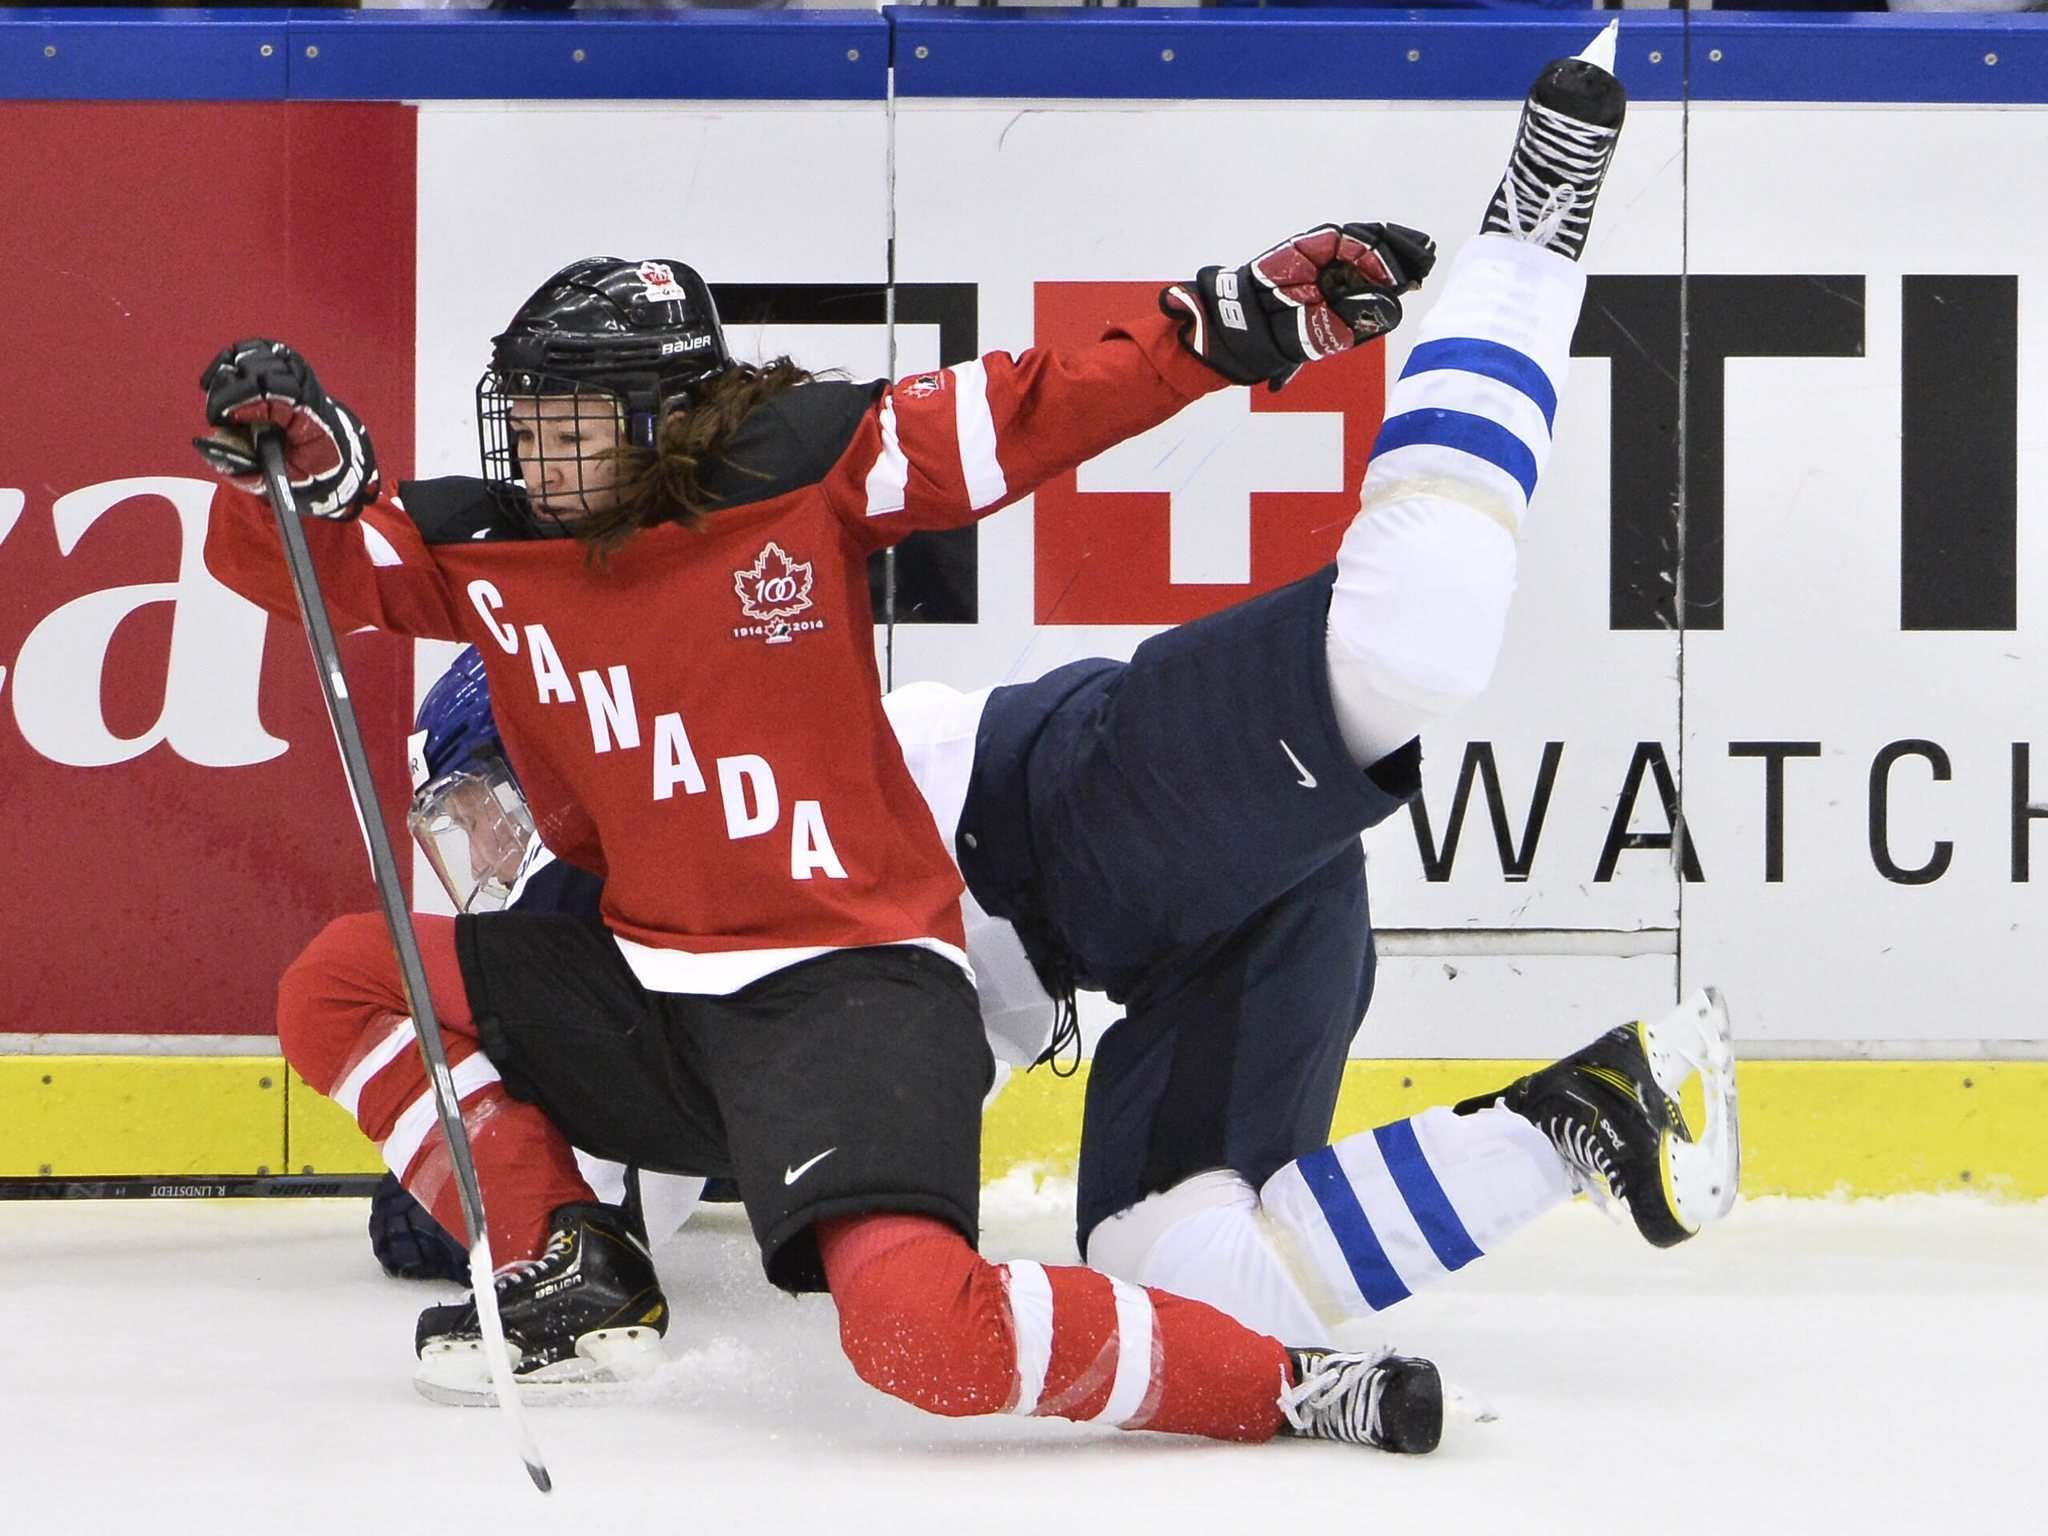 Finland&#39;s Rosa Lindstedt, rear, collides with Canada&#39;s Jocelyne Larocque during their 2015 IIHF Women&#39;s Hockey World Championship group A match between Canada and Finland at Malmo Isstadion in Malmo, southern Sweden in 2015. (AP Photo / Claudio Bresciani, TT) </p>